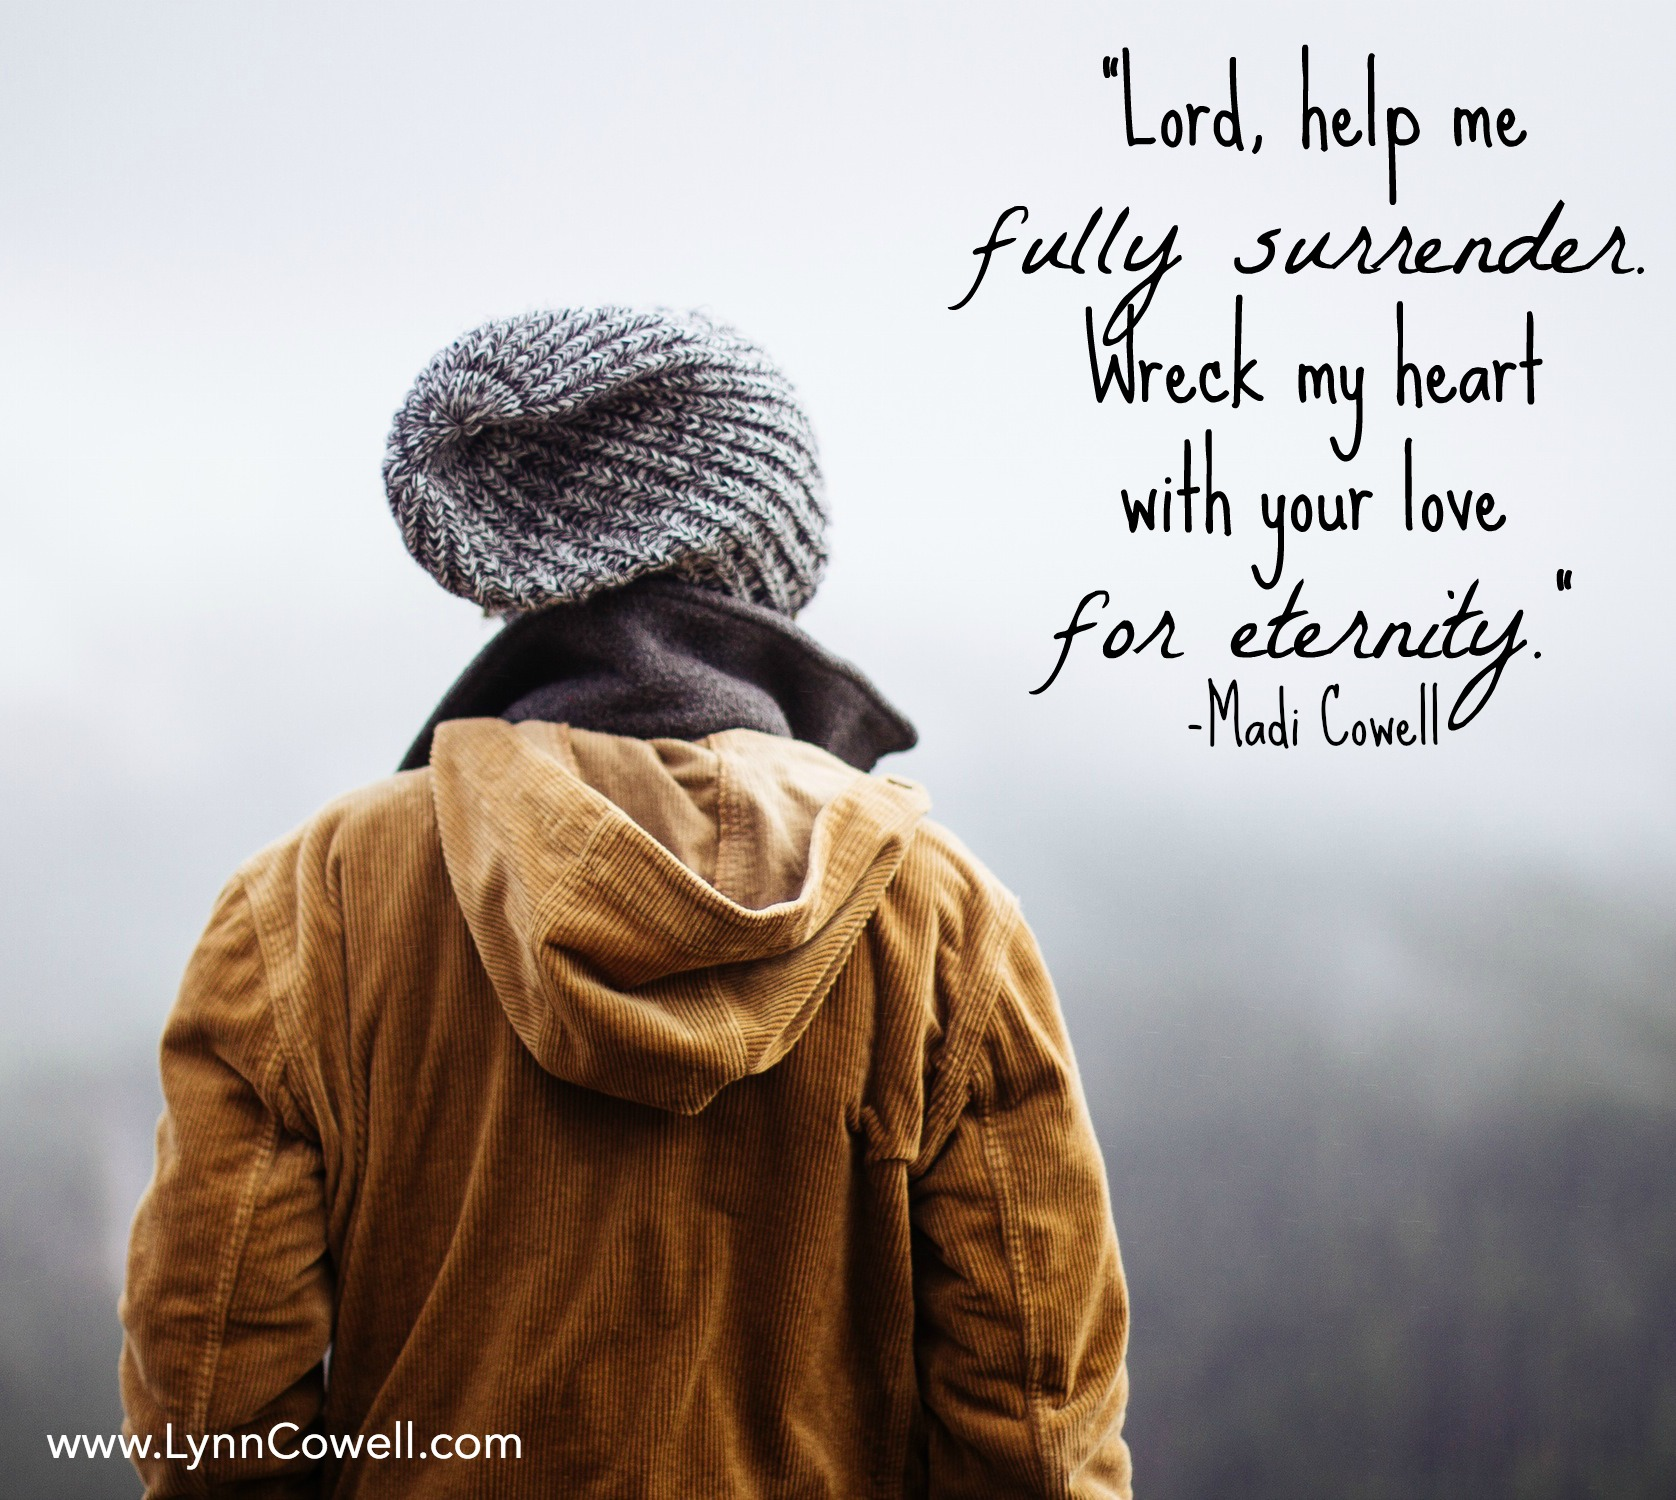 When we commit to God and make our relationship with Him two-ways, where we are filling ourselves up with His word and then going out and practicing, a shift is made. We start to fully believe what He says about His love and calling for us. When we completely tune into the idea that the creator of the universe wants to wreck our heart in the best way ever for eternity, we will never be the same.